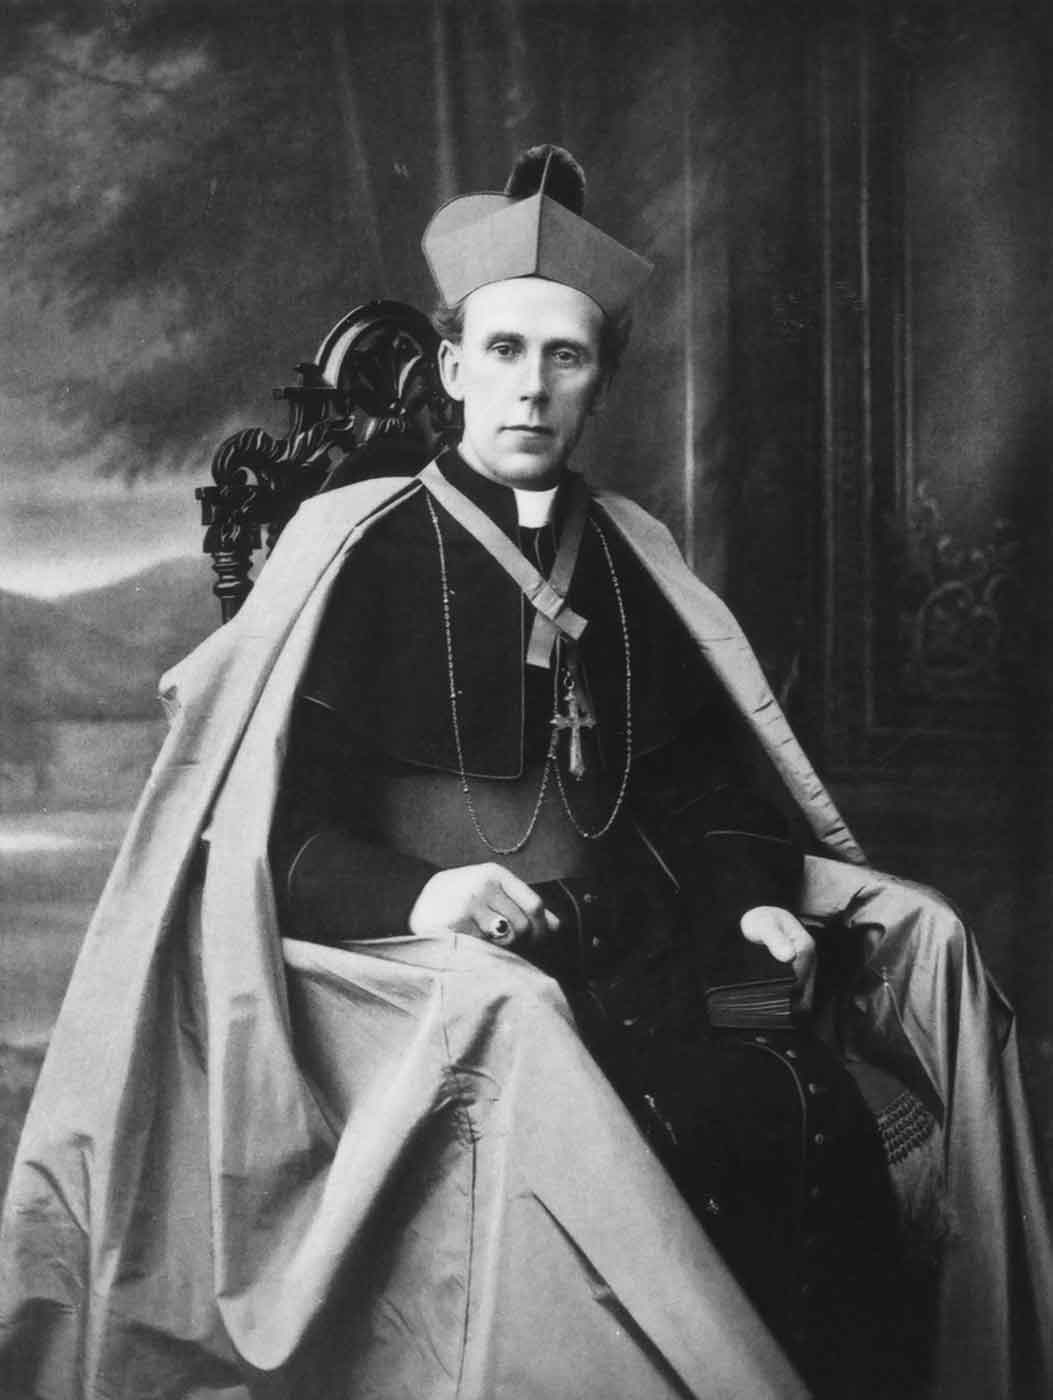 Black and white portrait of a man sitting in an ornate chair and wearing archdiocese attire. - click to view larger image